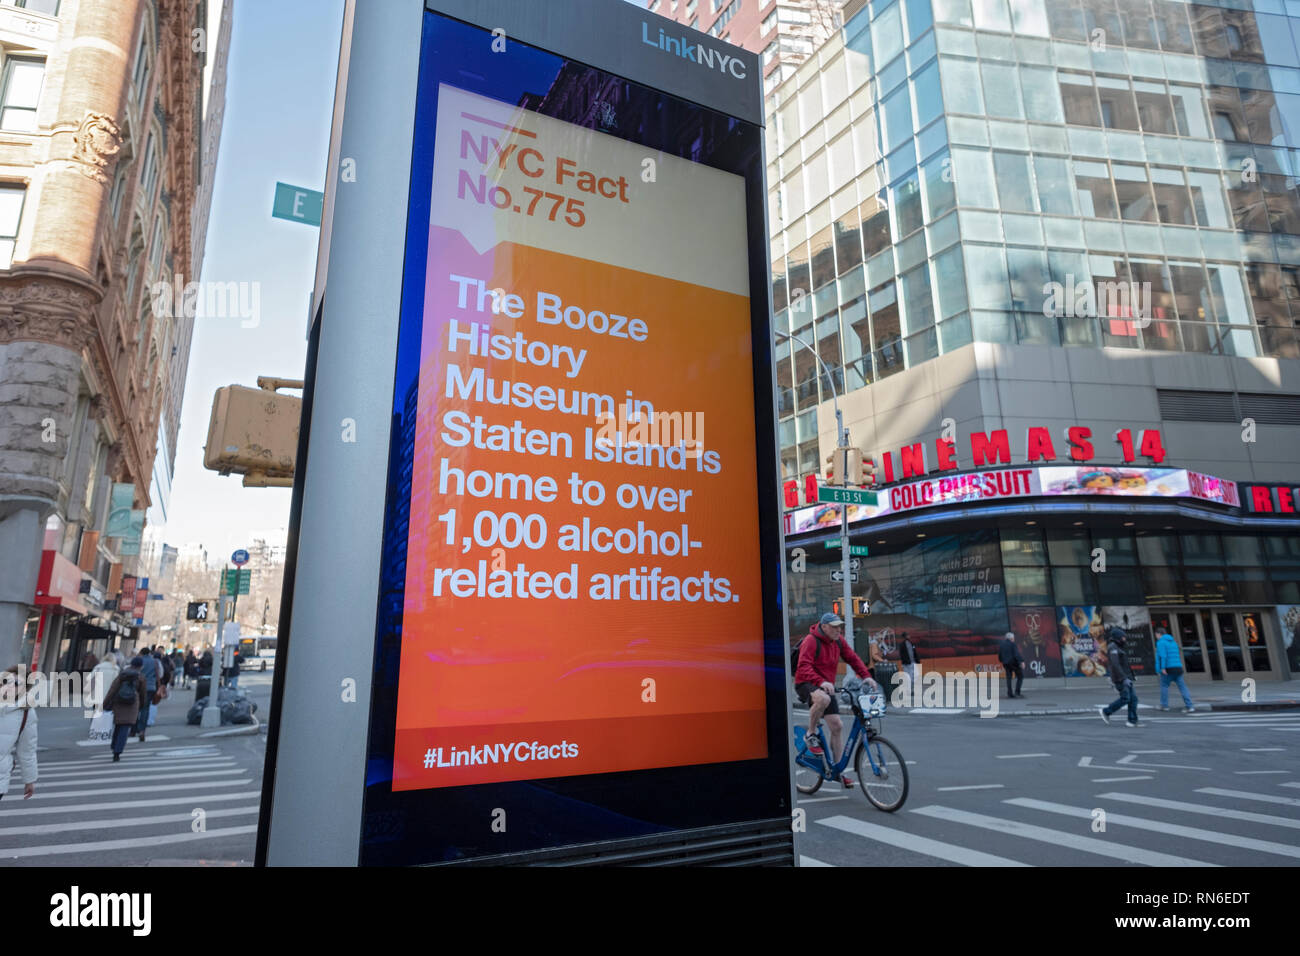 A message on a LINK NYC screen with the fun fact about a Booze History Museum with 1000+ artifacts. Sign on Broadway in Greenwich Village, Manhattan. - Stock Image